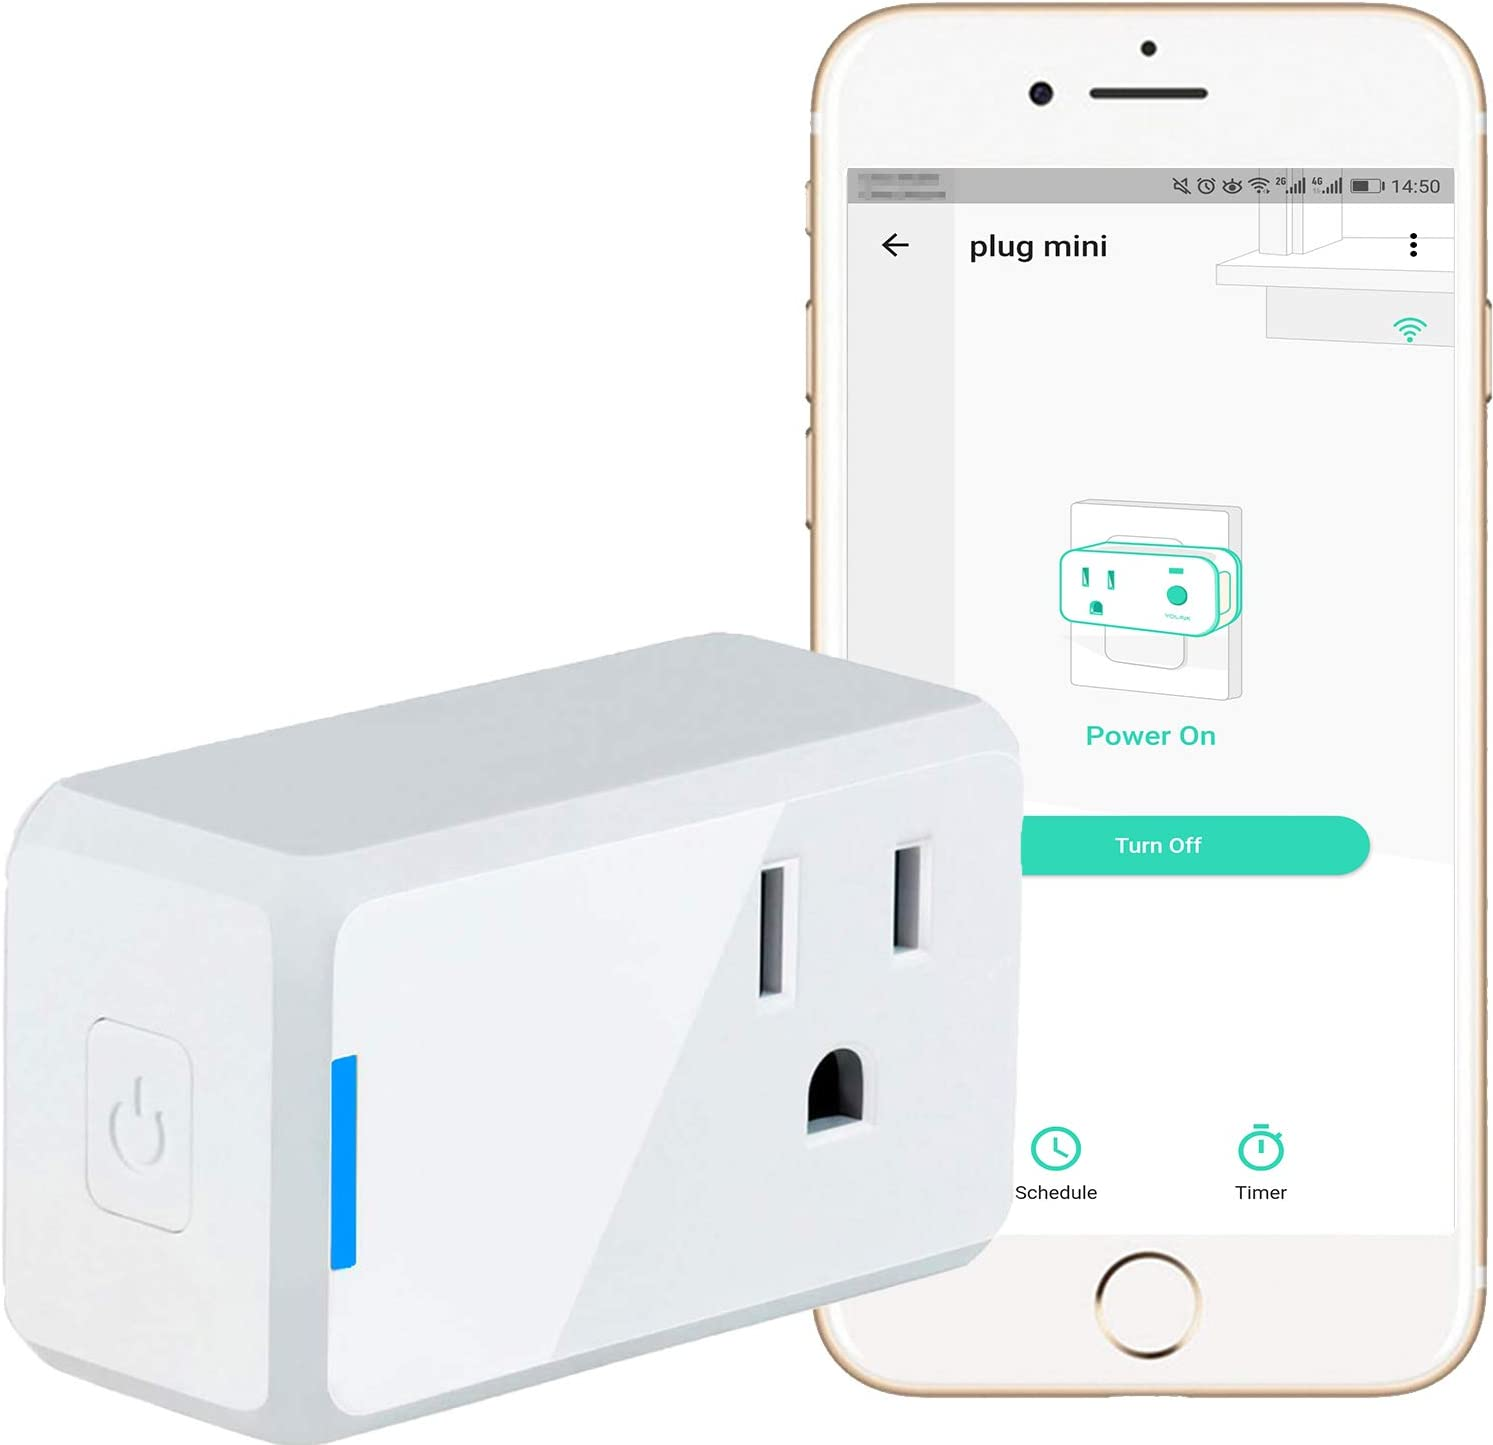 YoLink Smart Plug Mini, 10 Amp ETL Certified Smart Outlet, Smart Scheduling of Power Usage, Appliance/Device Control, Works with Alexa & Google Assistant, IFTTT - YoLink Hub Required